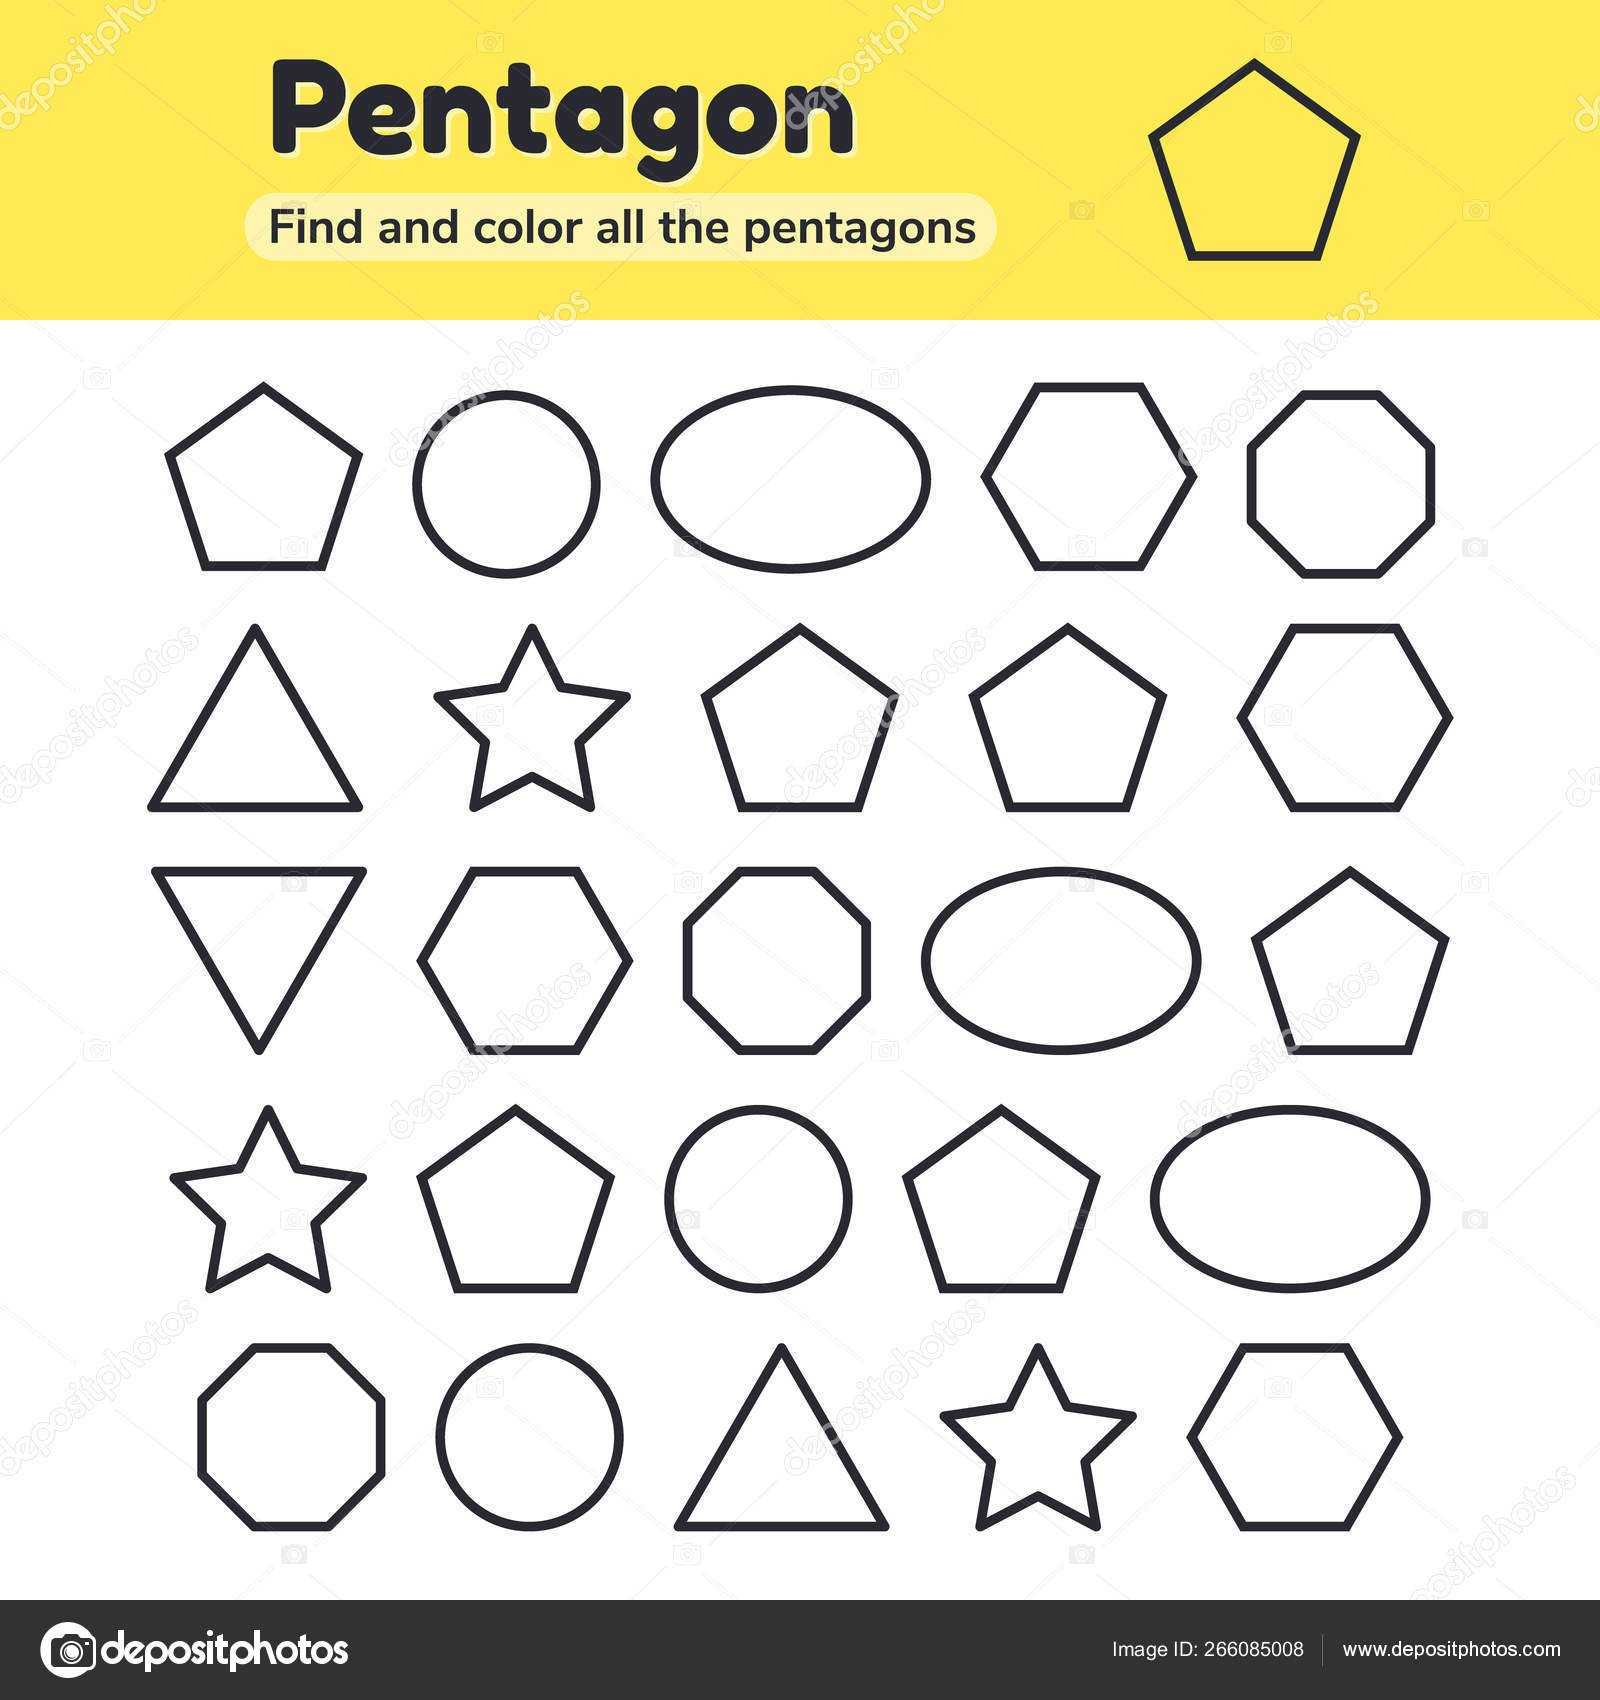 Hexagon Worksheet for Kindergarten Educational Worksheet for Kids Kindergarten Preschool and School Age Geometric Shapes Pentagon Octagon Hexagon Circle Oval Triangle Star